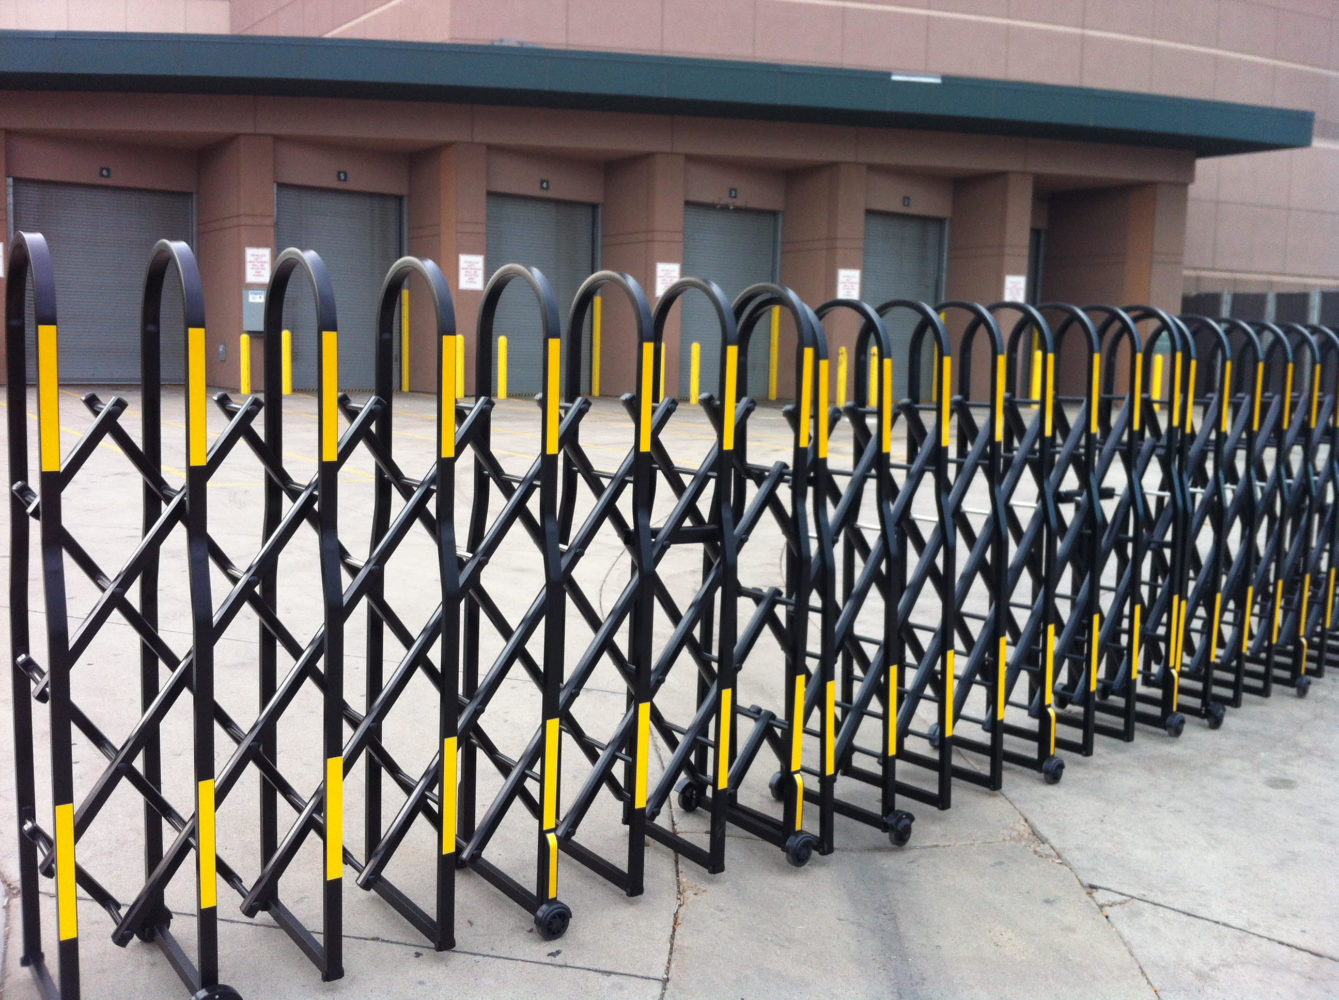 municipal series flat strap pedestrian safety barriers is available in multiple colors